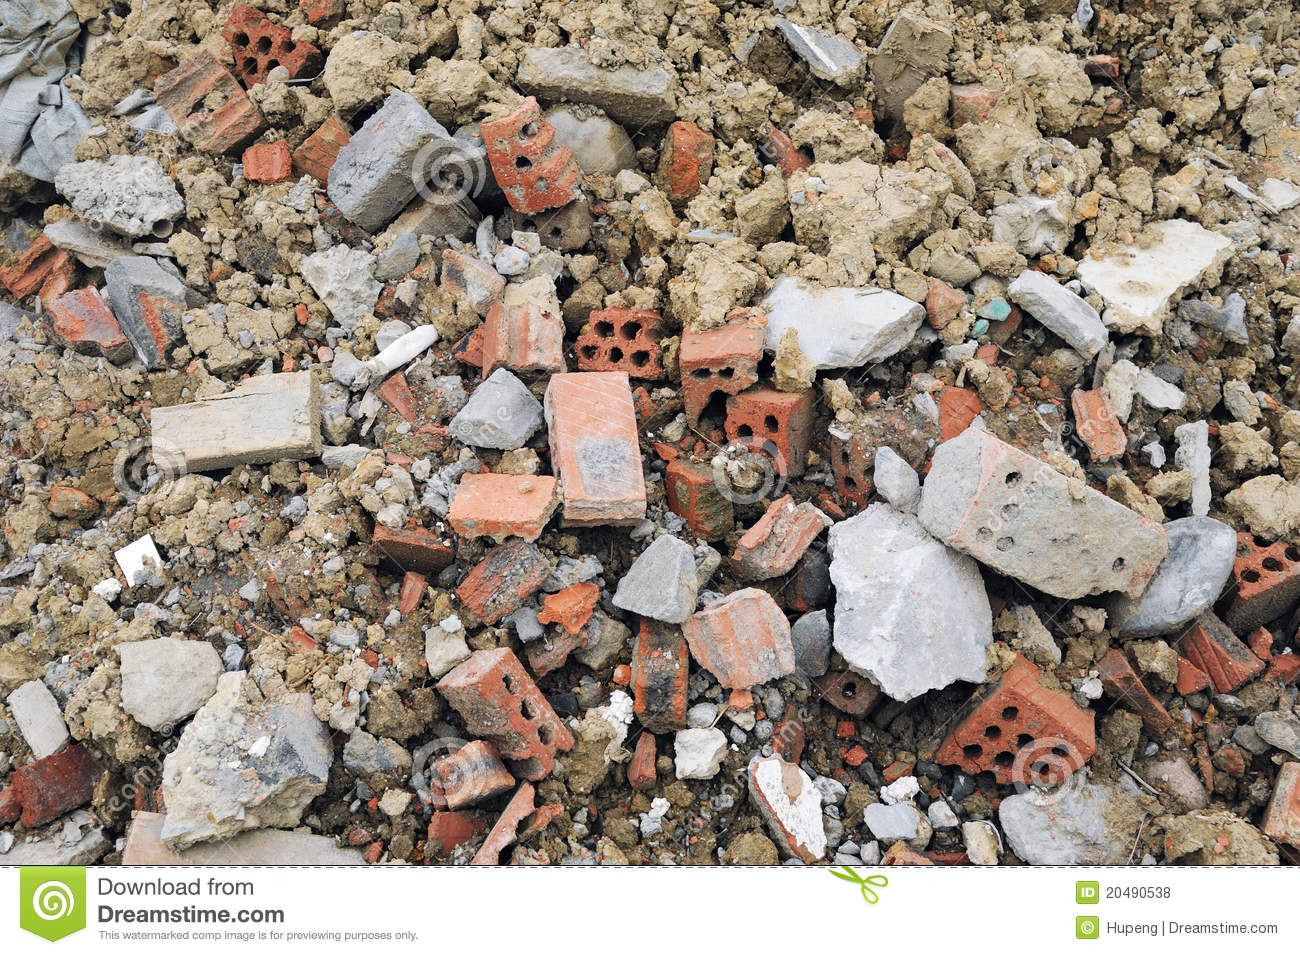 Royalty Free Stock Photos Construction Waste Bricks Image20490538 on material design house